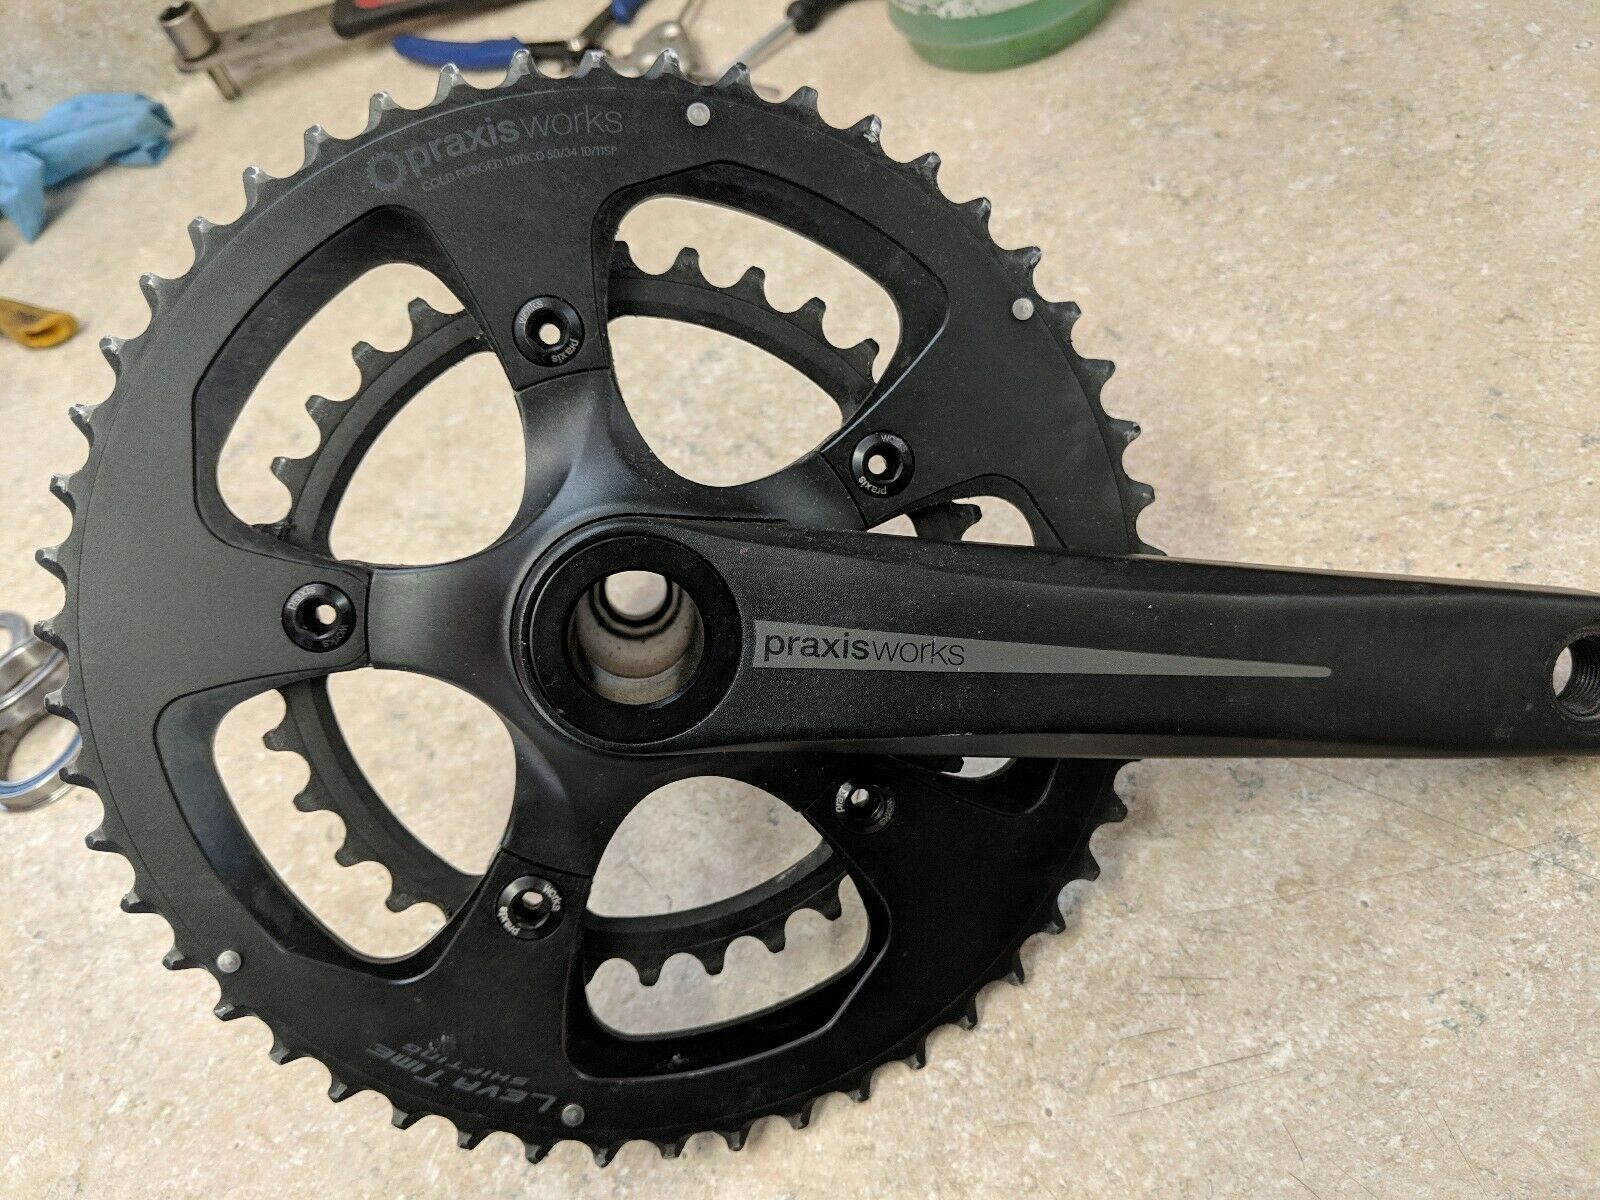 Praxis Zayante M30 crankset 50 34 chainrings, bb86, 175mm inc. Sealed BB Bearing